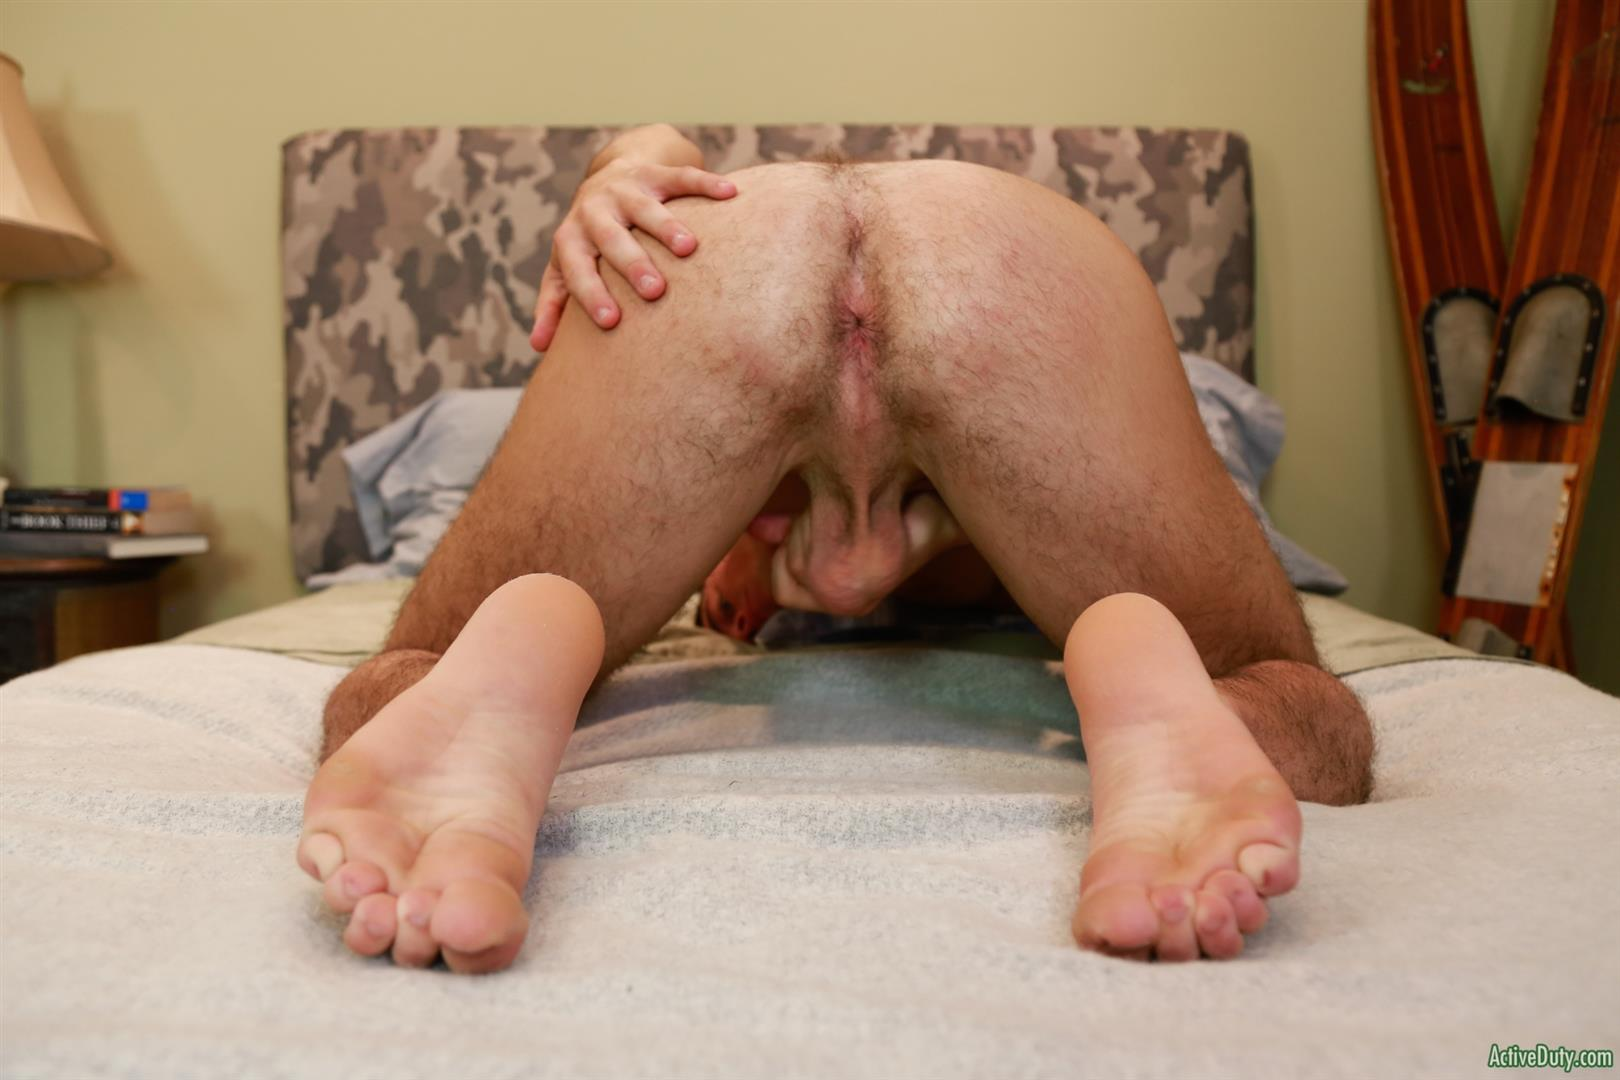 Active-Duty-Tyler-Austin-Naked-Soldier-Jerking-Off-Big-Cock-11 Hairy Ass Army Boy Gets Naked And Jerks Off For Money